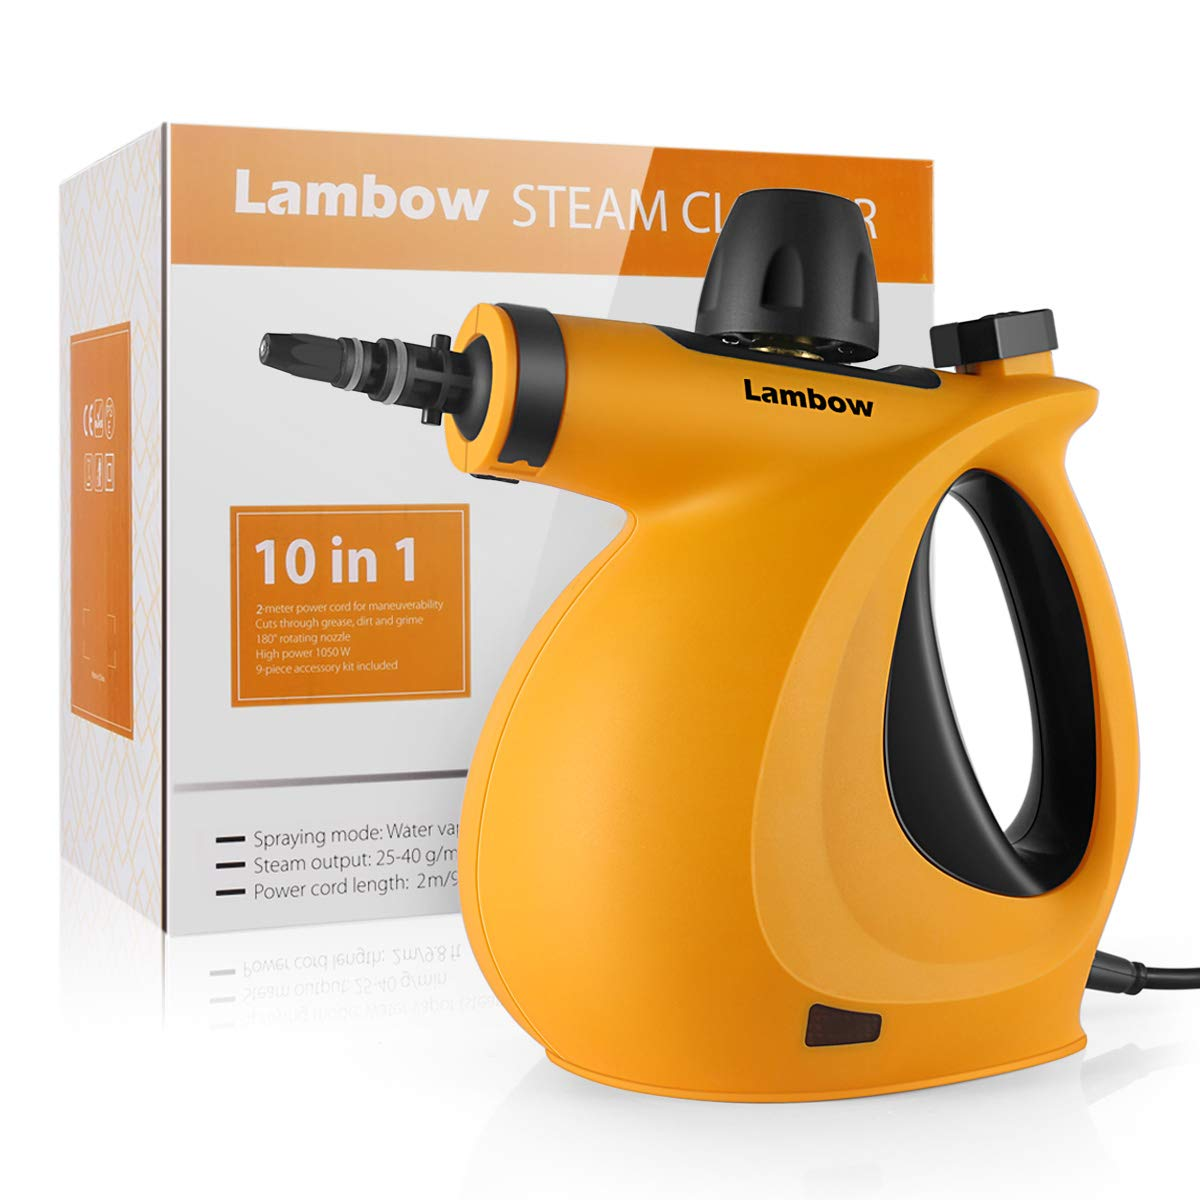 Lambow Handheld Pressurized Cleaner 9-Piece Accessory Set Purpose Multi-Surface All Natural, Chemical-Free Steam Cleaning Home, Auto, Patio (Orange)